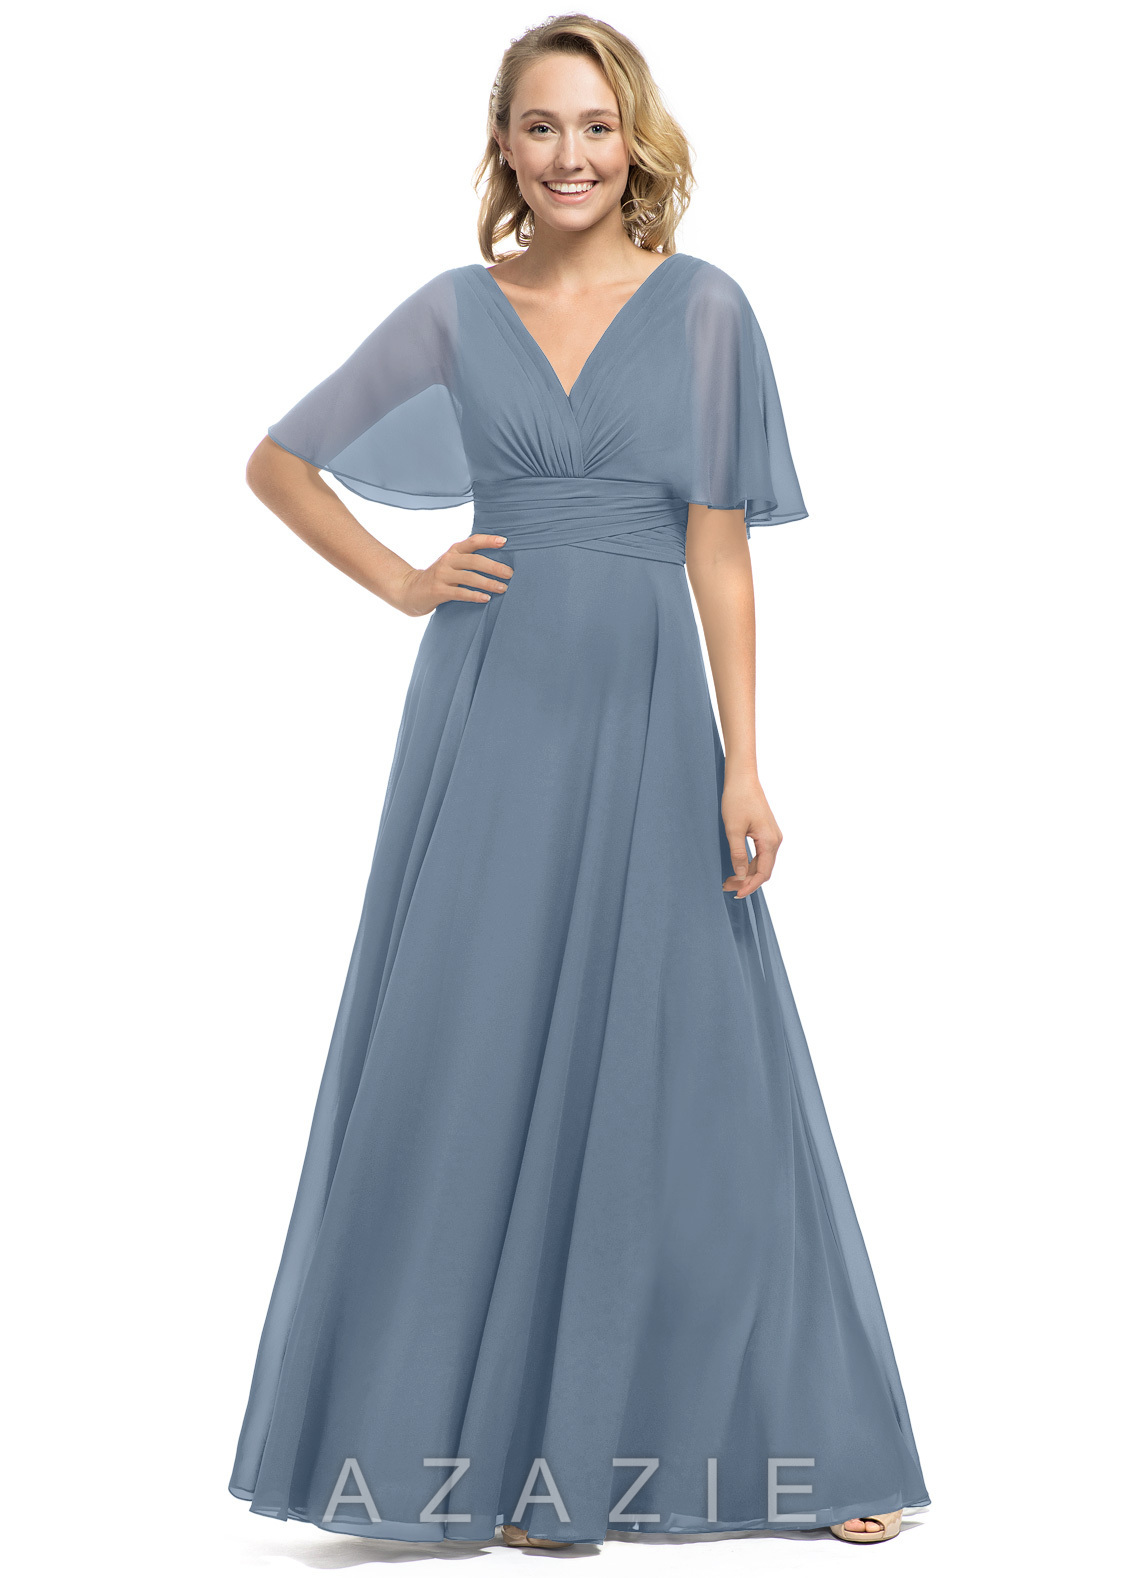 e6aa66f0d6c10 Azazie Pamela Bridesmaid Dress | Azazie